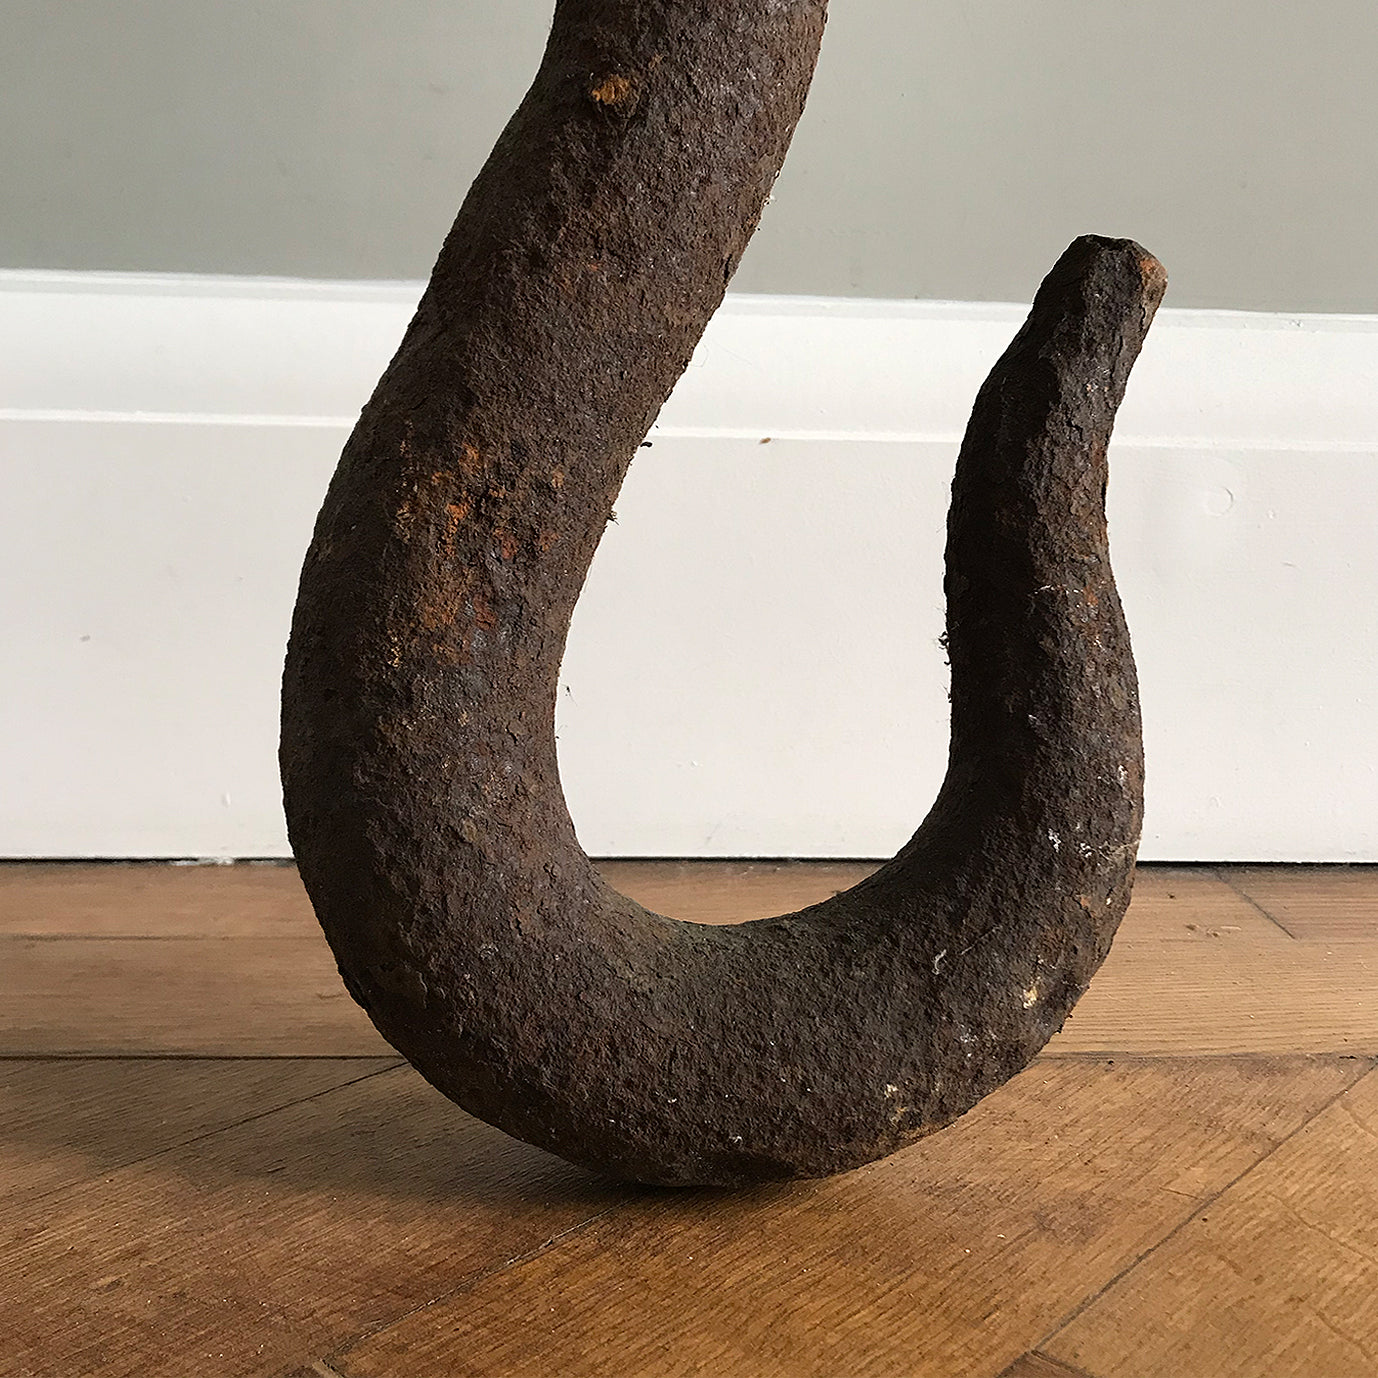 Huge cast iron Vintage Crane Hook. This heavy industry piece would have come off of a large vintage crane. It is Incredibly heavy!! Looks fab just leaning against the wall - SHOP NOW - www.intovintage.co.uk